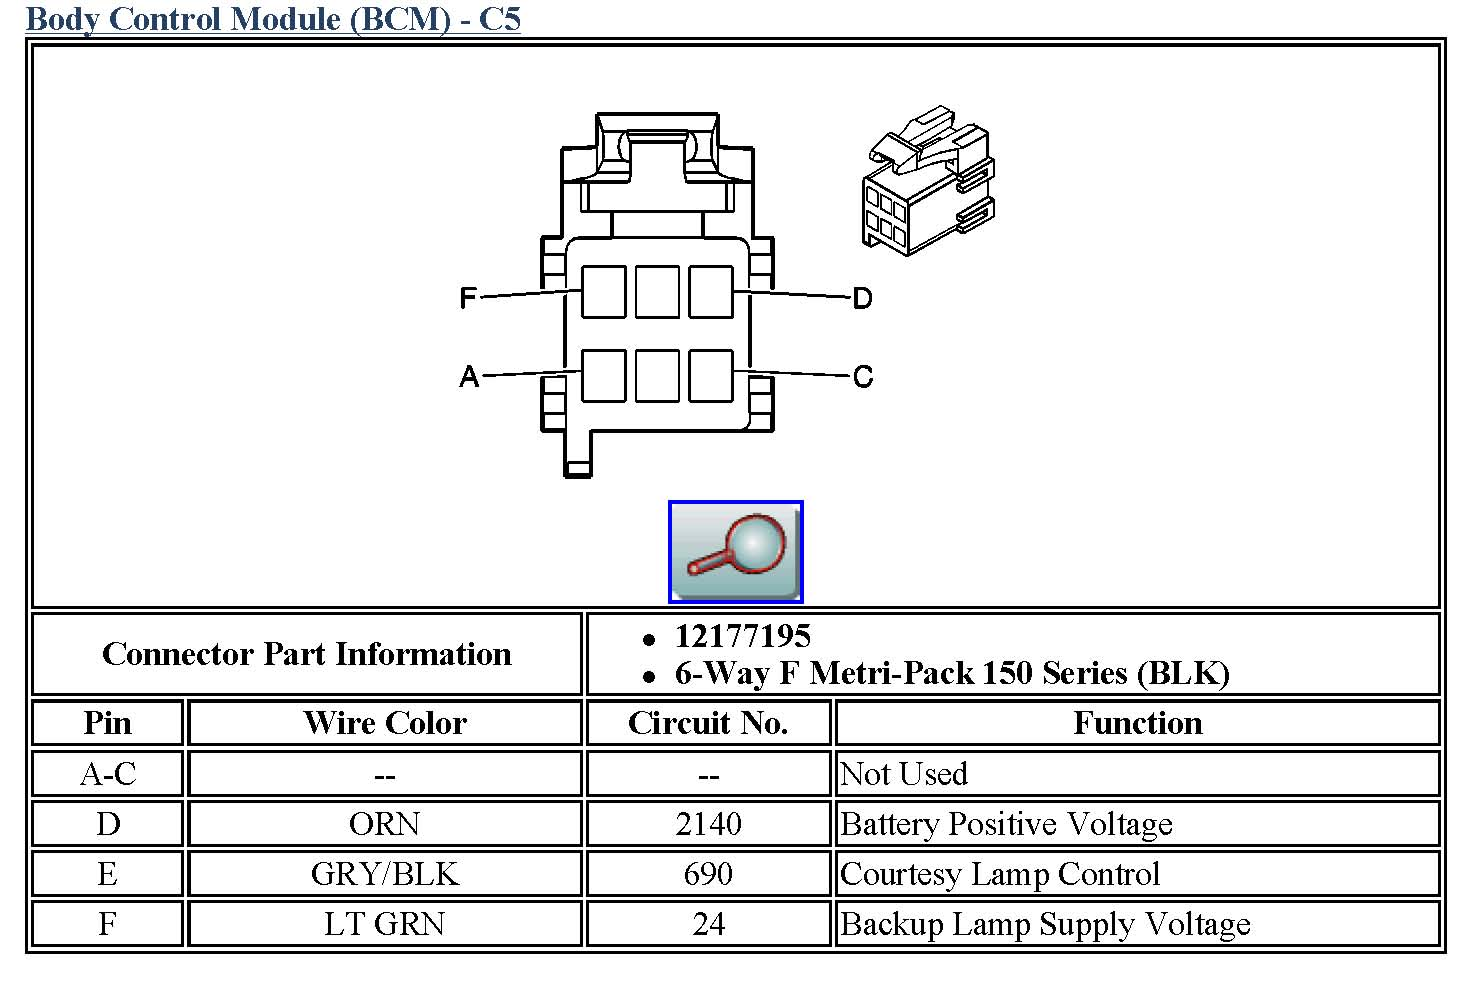 medium resolution of 2009 chevy alalanche body control module wiring diagram